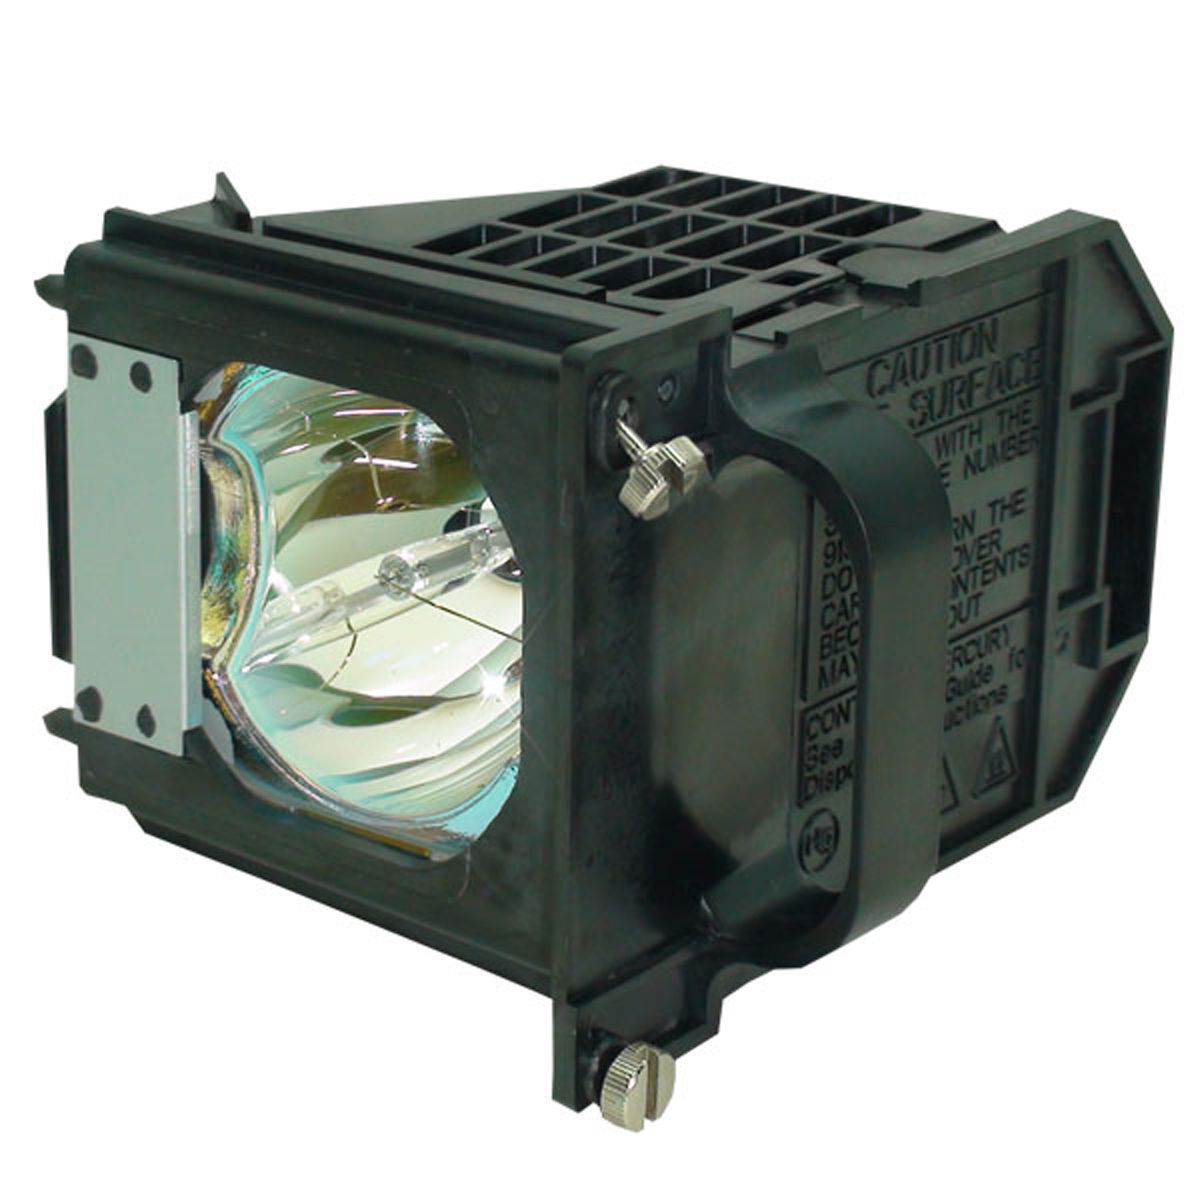 TV Lamp 915P061010 For Mitsubishi WD-57733 WD-57734 WD-57833 WD-65733 WD-65734 Projector Bulb Lamp with Housing<br>